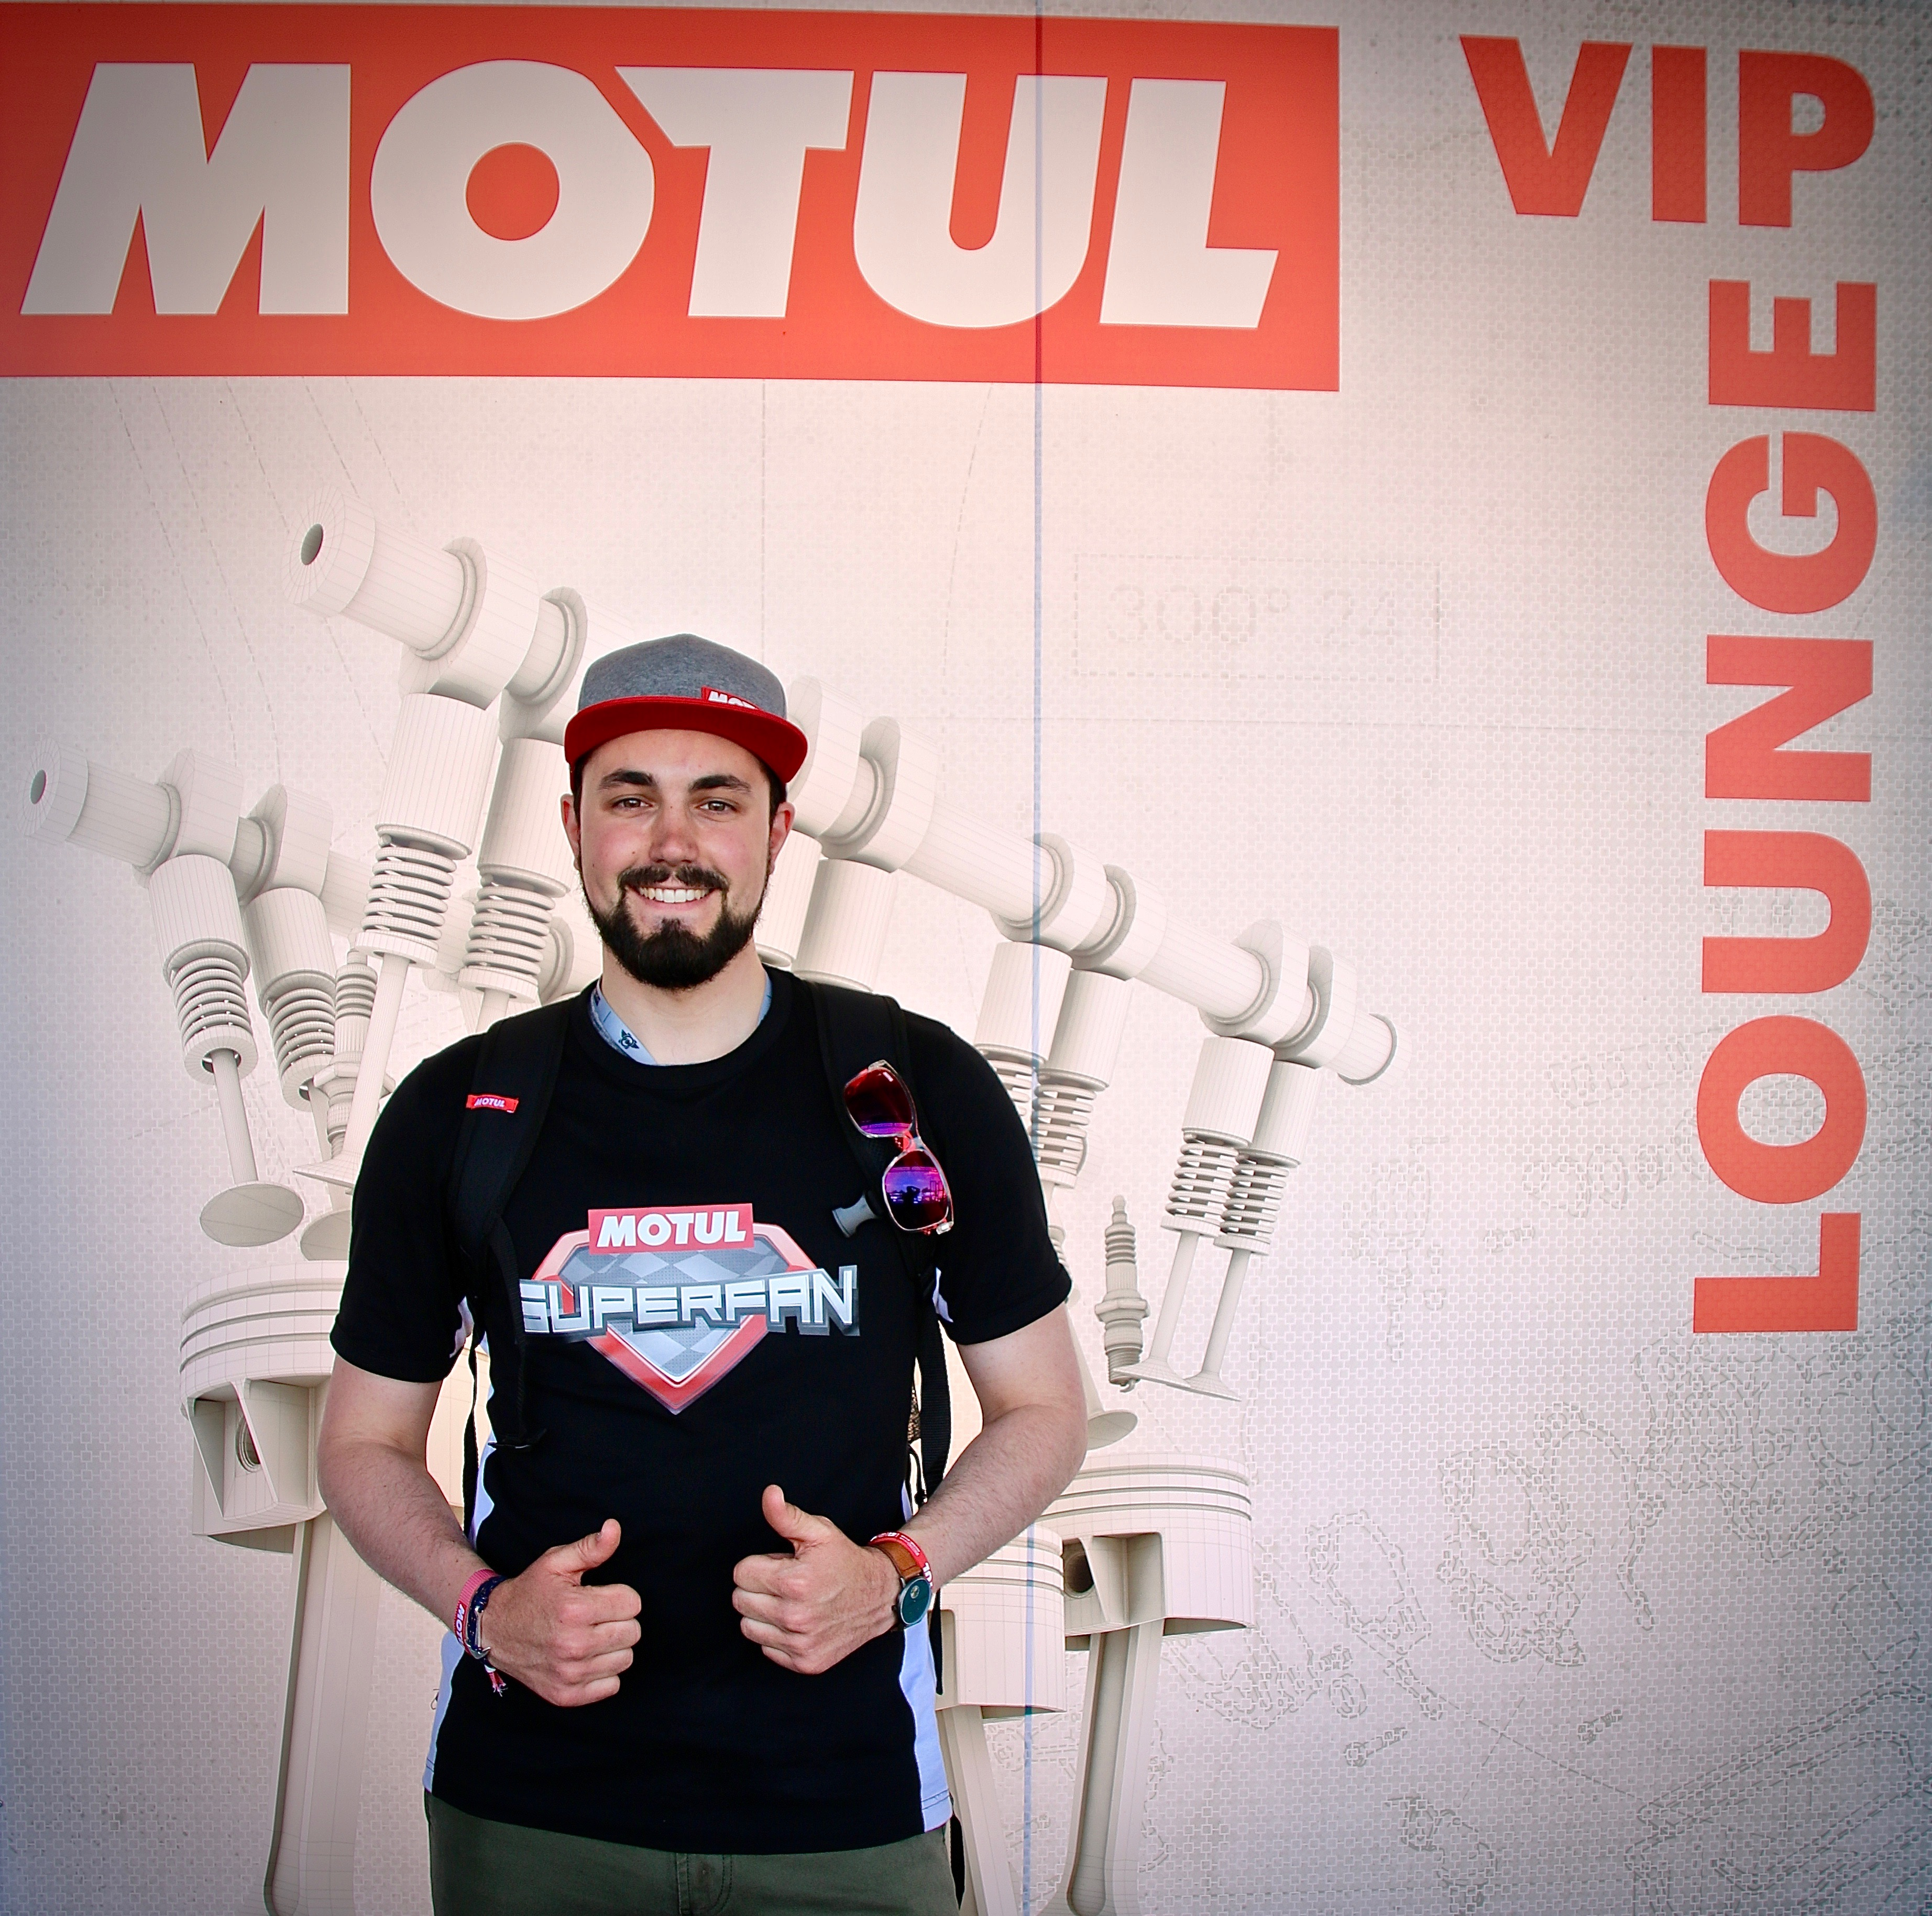 Motul Superfan – how it works